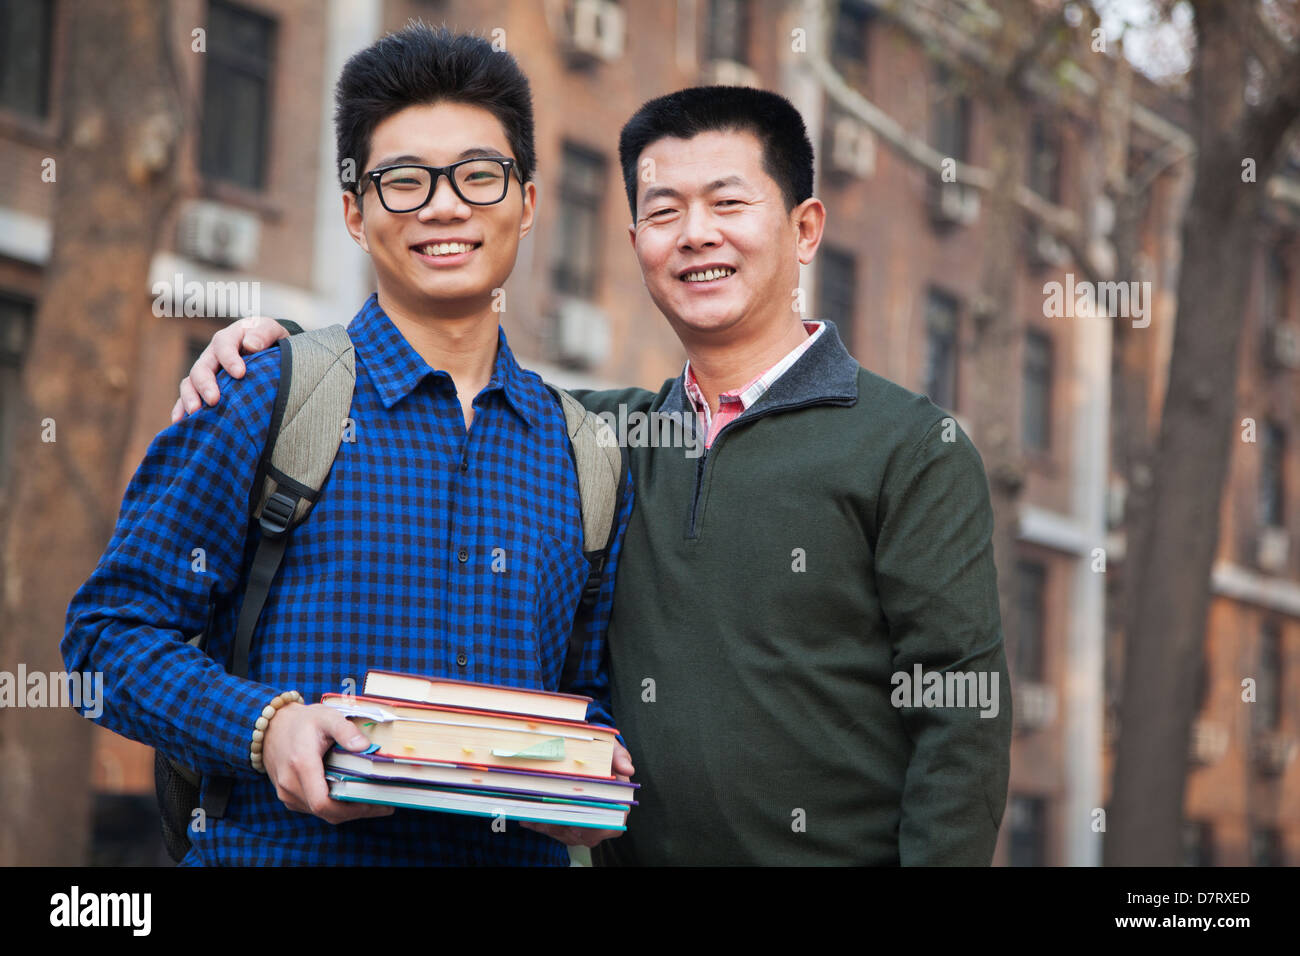 Father and son portrait in front of dormitory - Stock Image